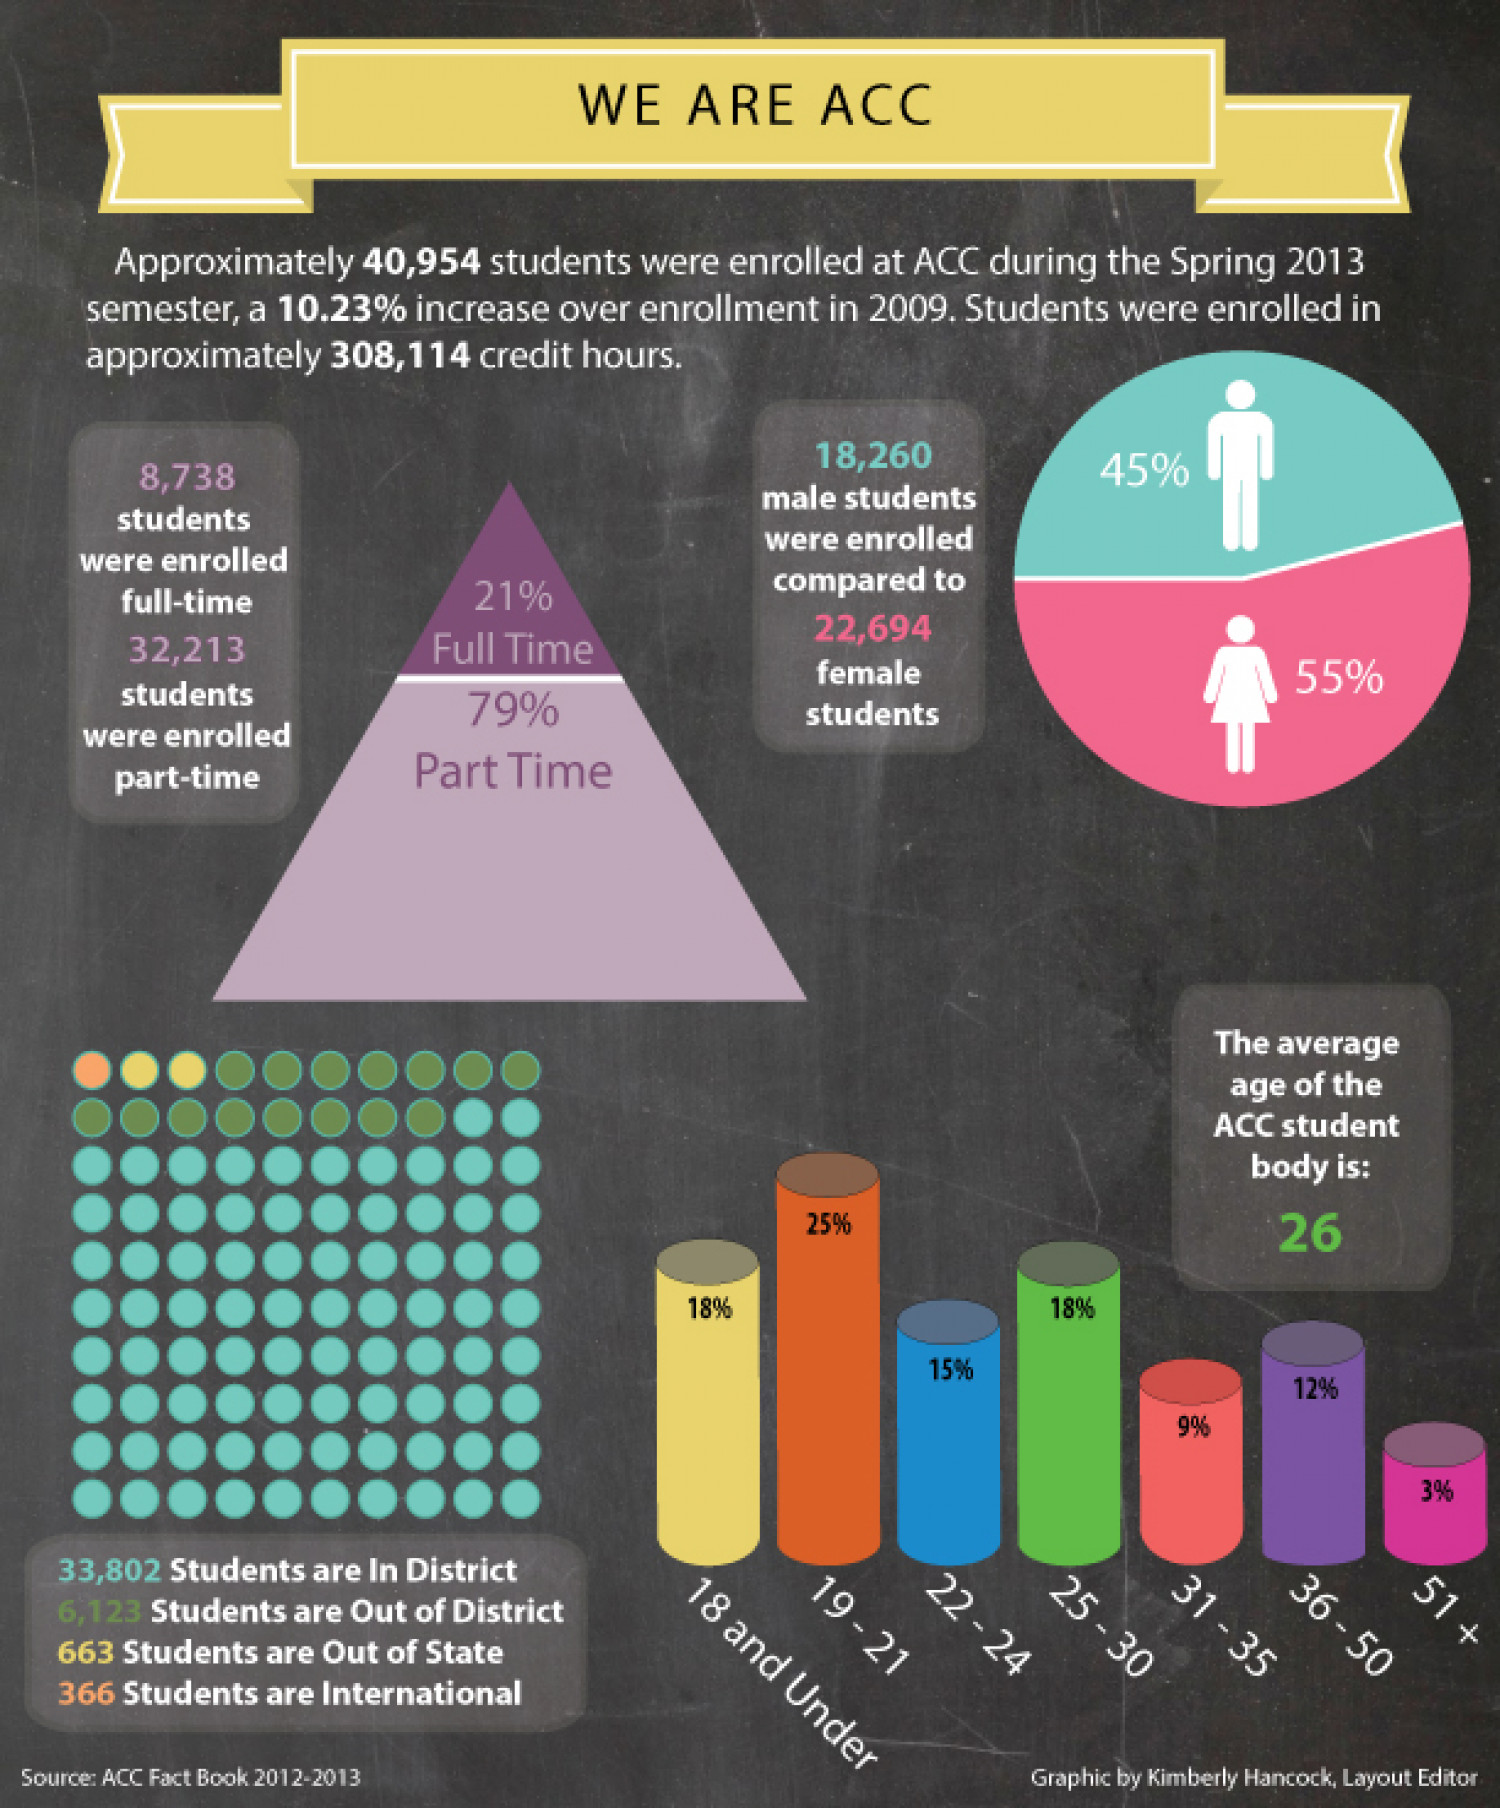 We Are ACC Infographic